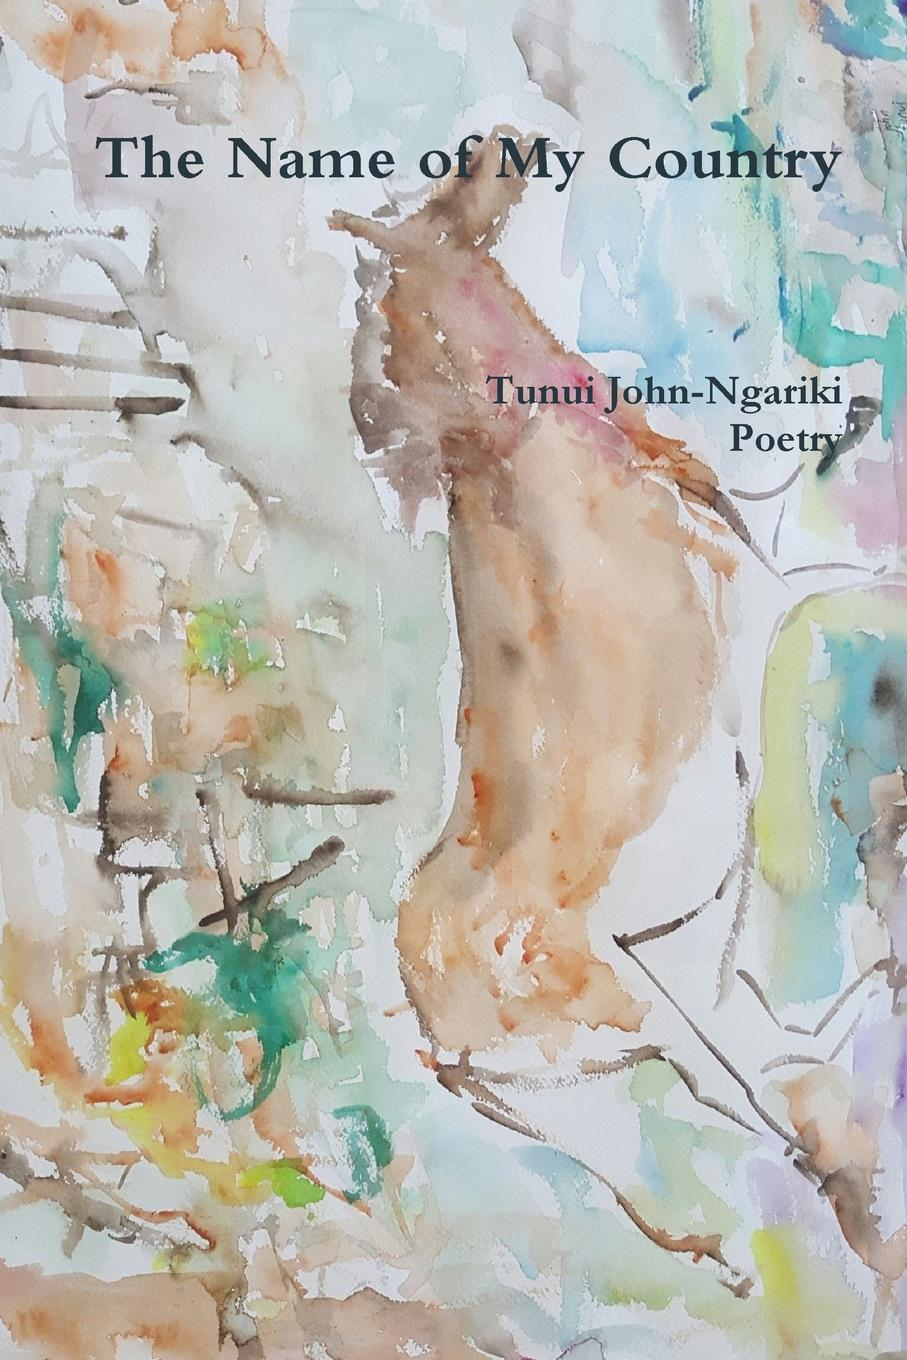 Tunui John-Ngariki The Name of My Country john evans in the shadow of cotton